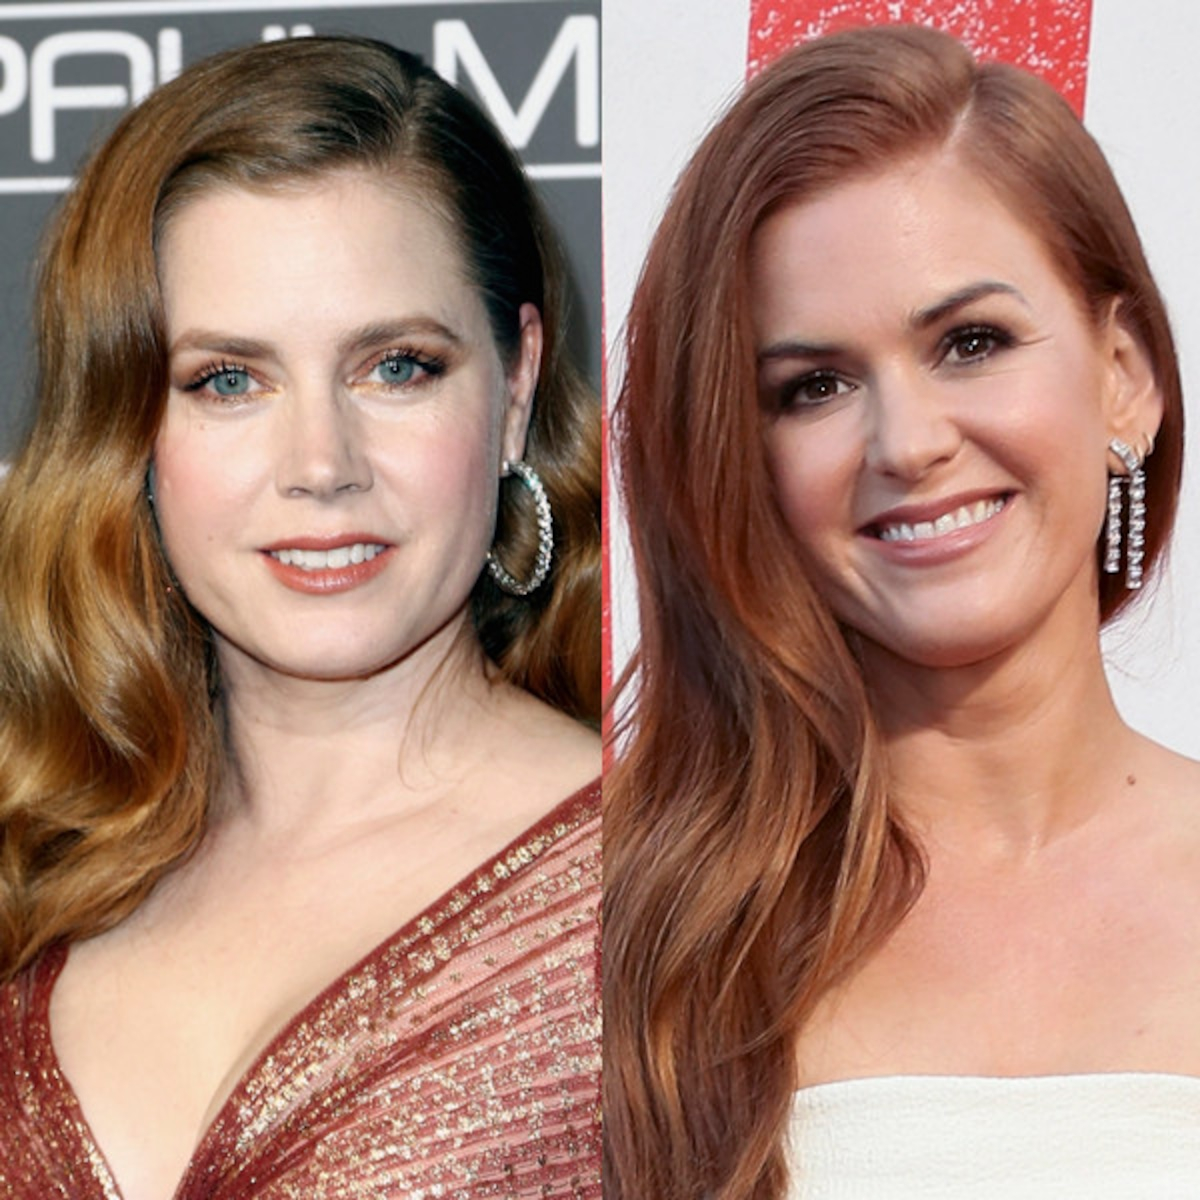 Amy Fisher Caught On Tape isla fisher doesn't look like amy adams anymore | e! news